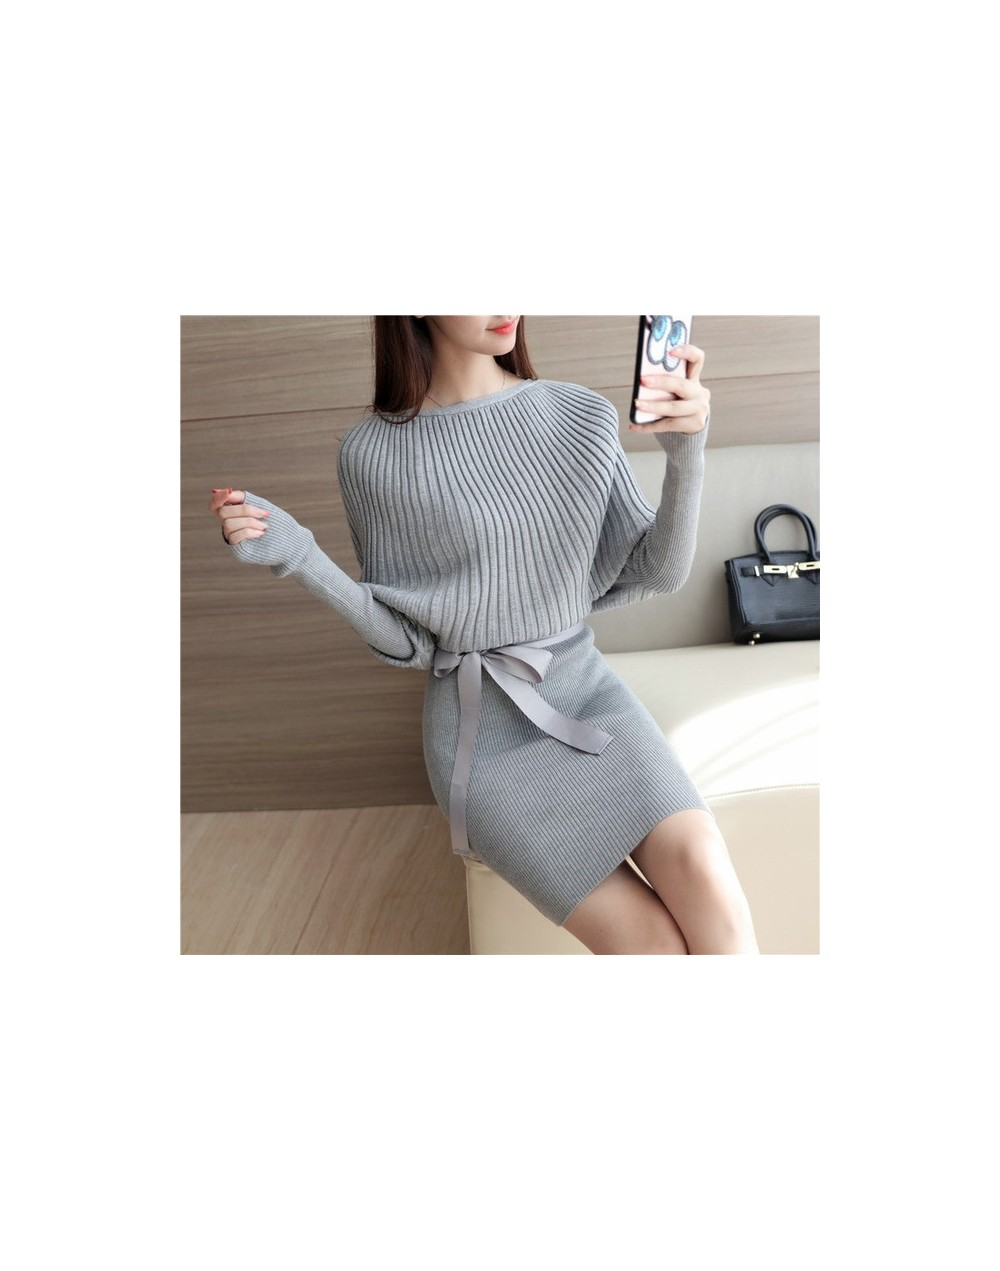 2017 Spring and Autumn New Women Korean ladies loose sweater Stretch Skirt - gray - 4J3800633048-2